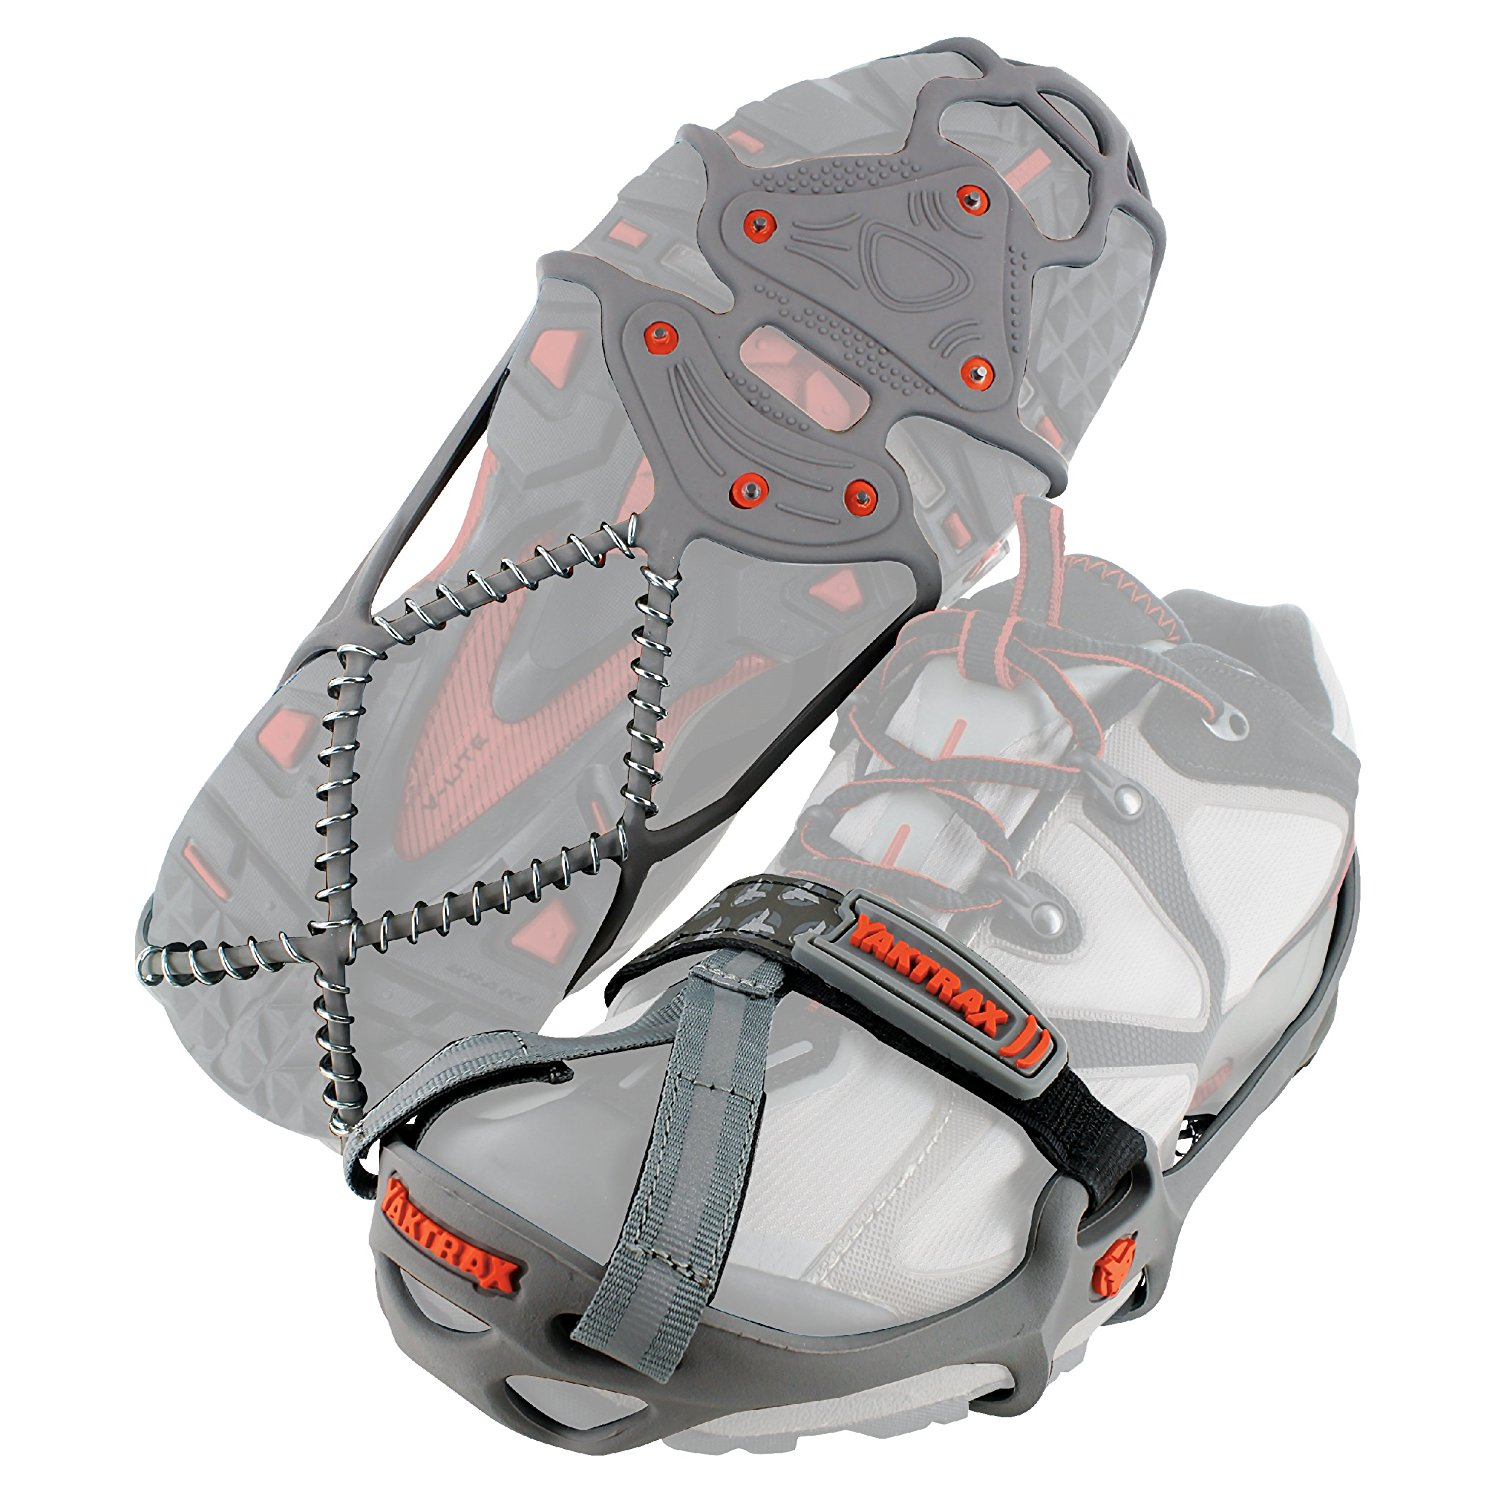 Run Traction Cleats for Running on Snow and Ice Small (Sh...